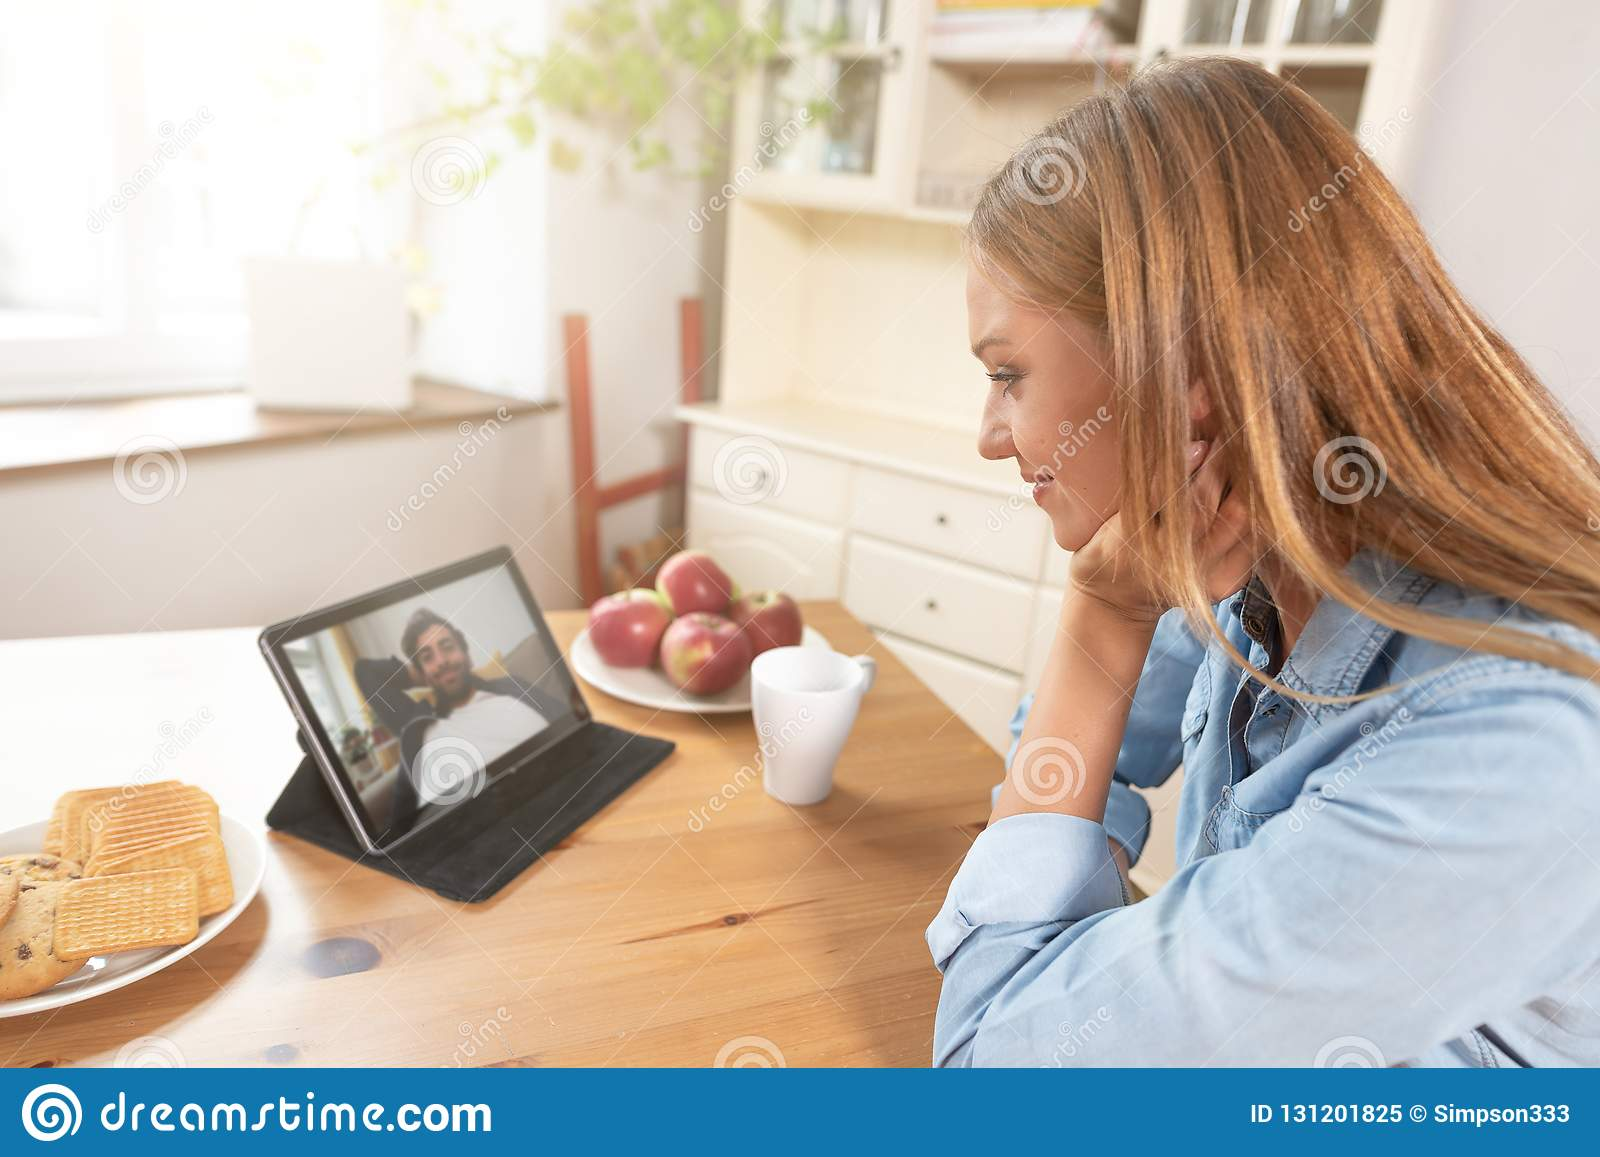 men video chat